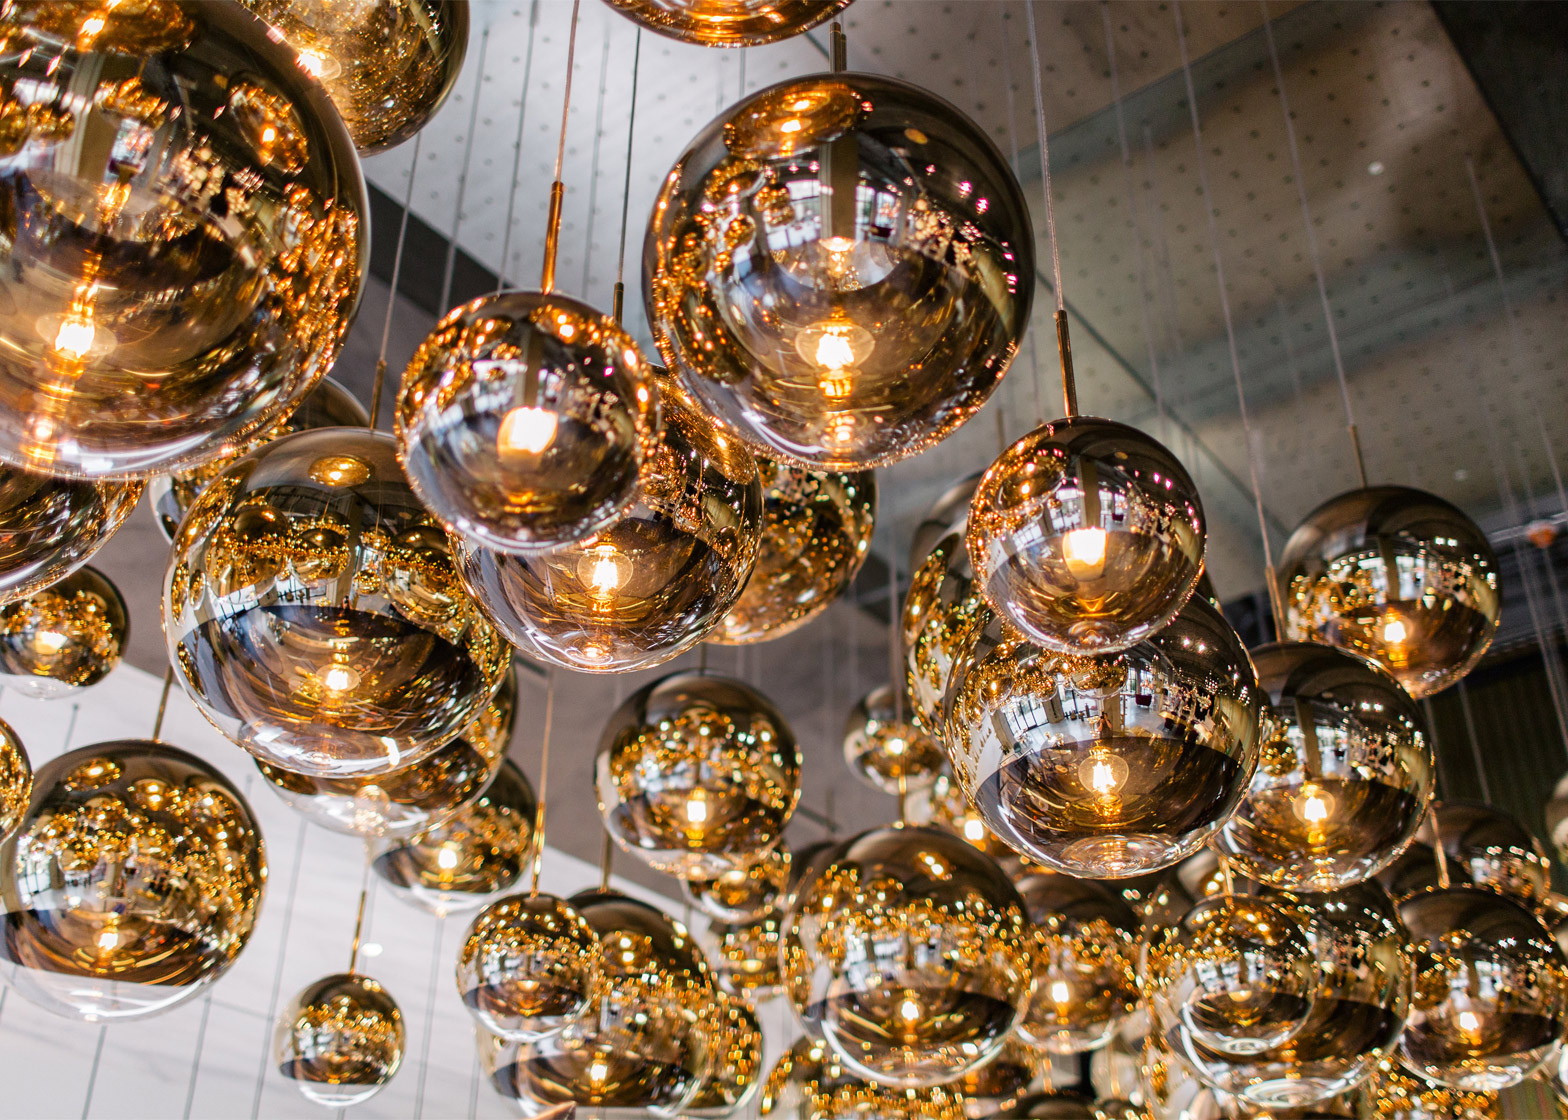 New Los Angeles store by Tom Dixon